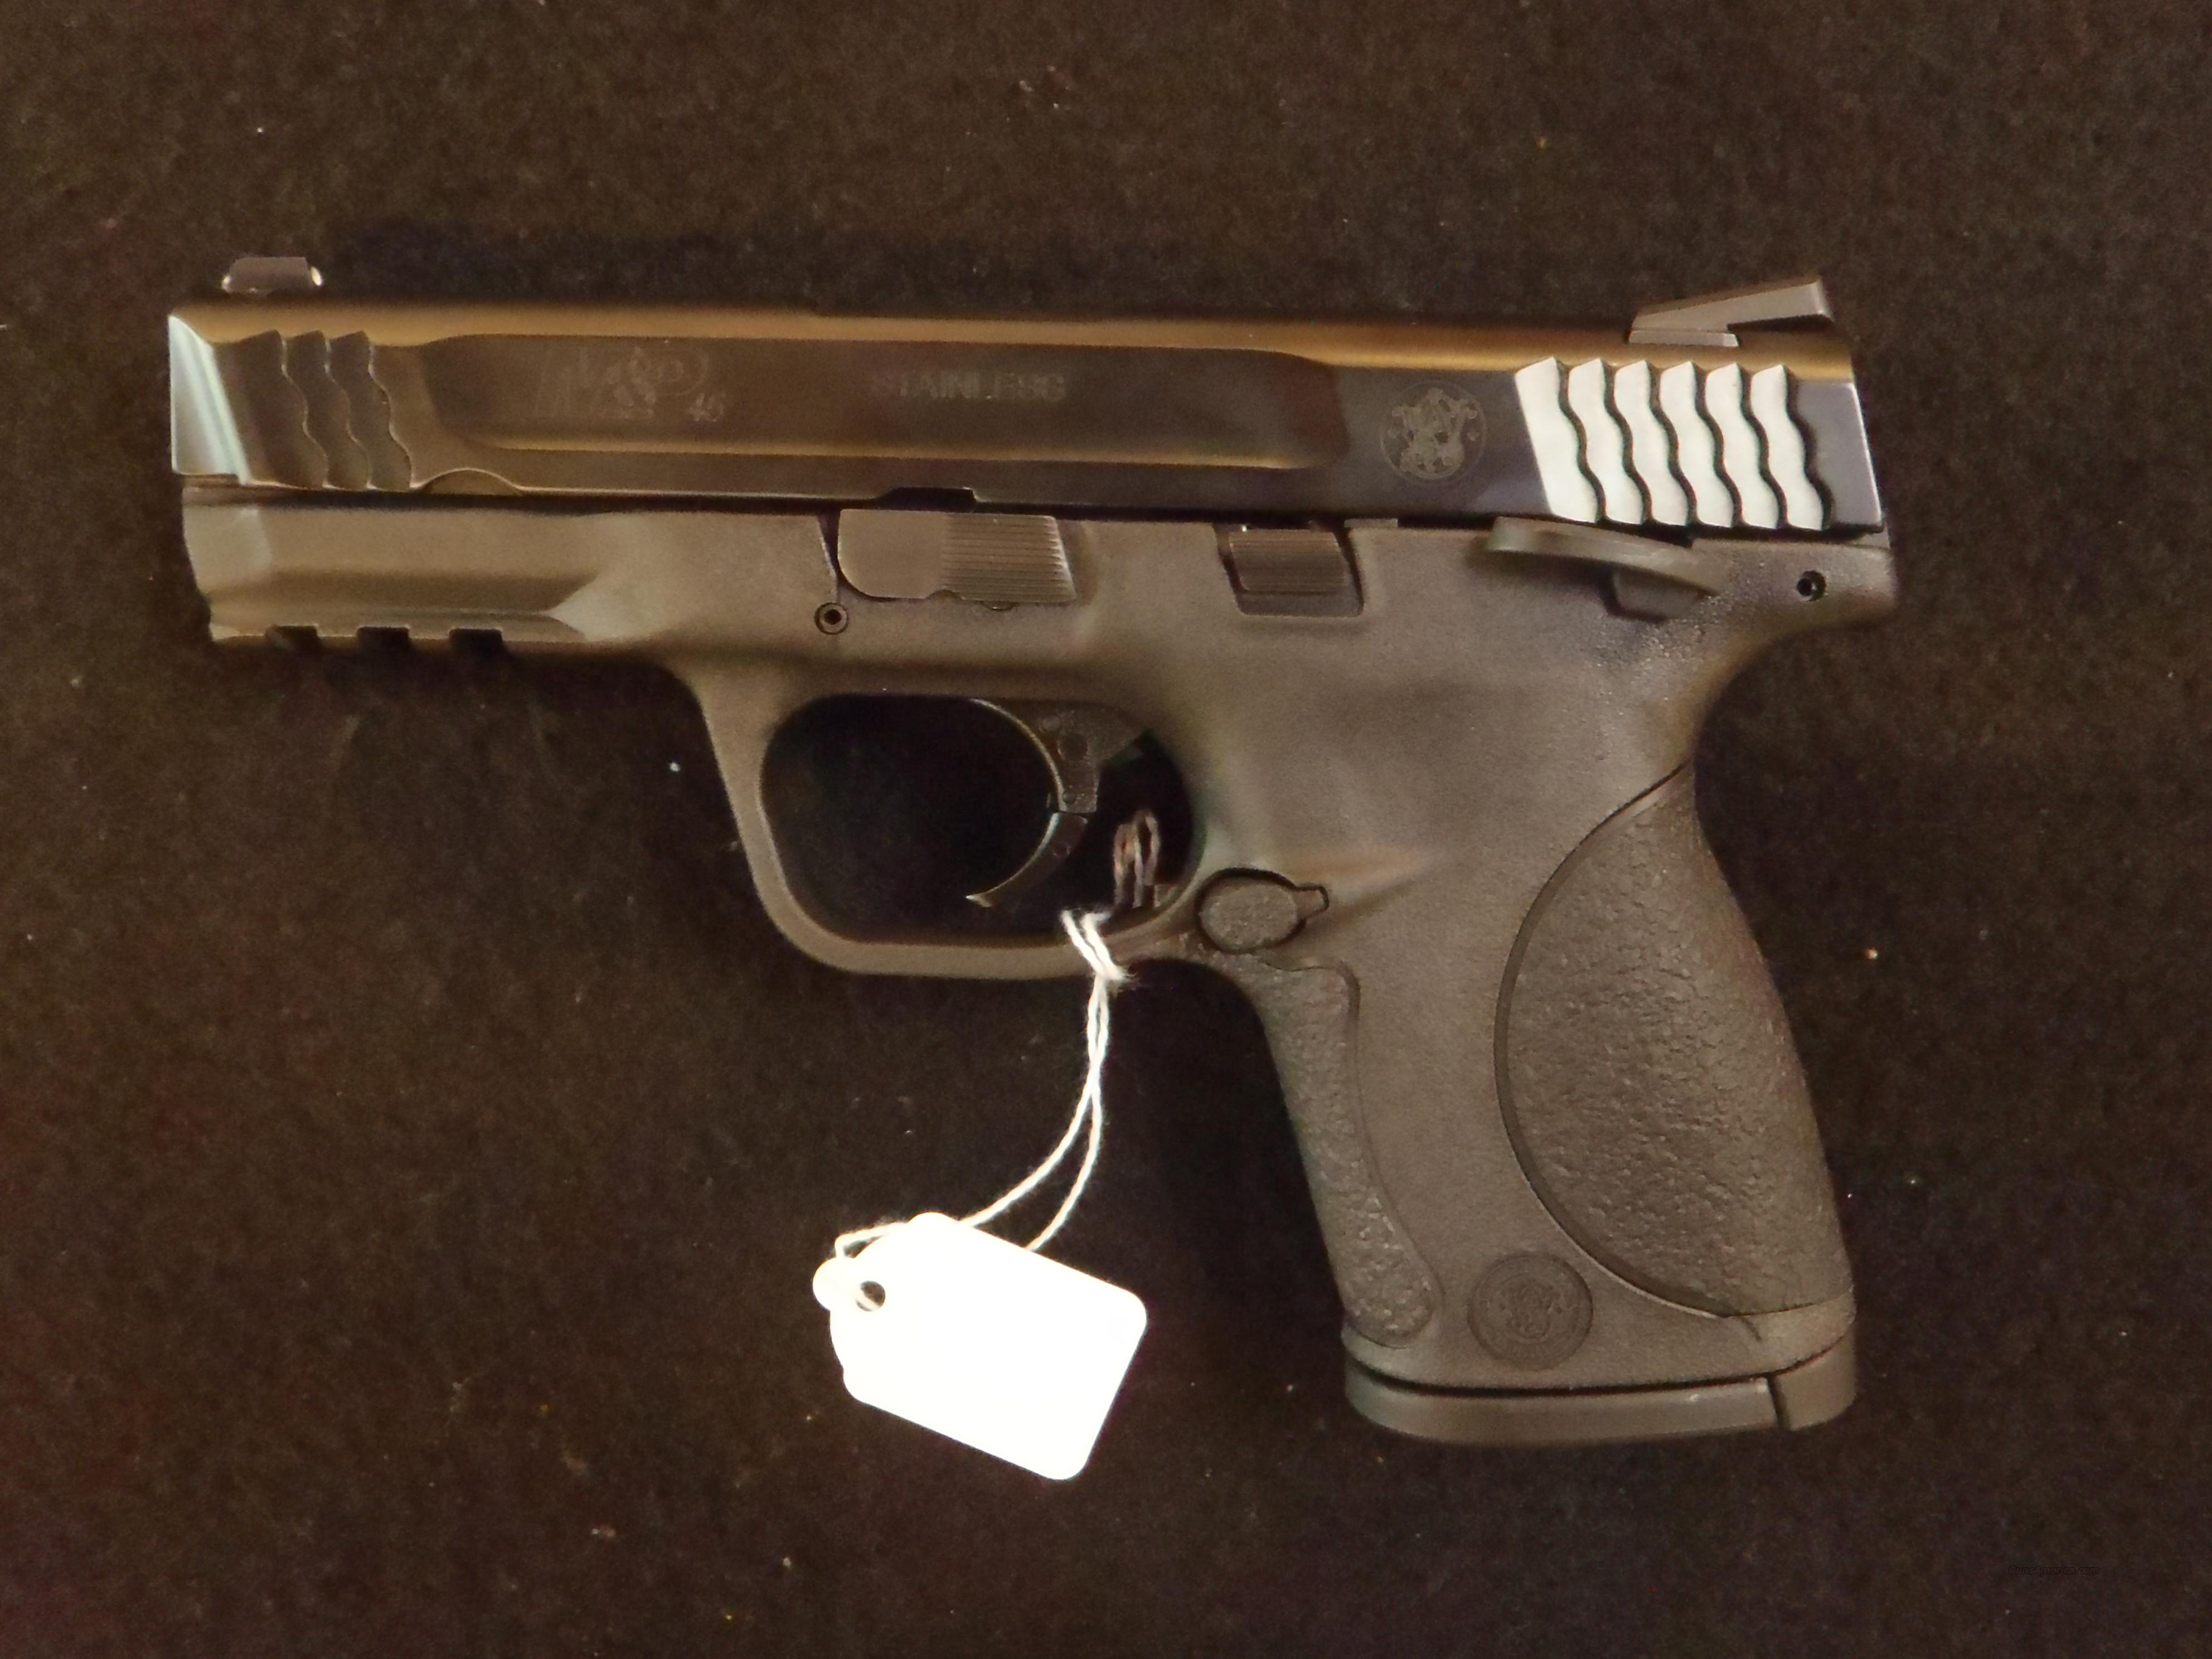 Smith and Wesson M&P .45 ACP  Guns > Pistols > Smith & Wesson Pistols - Autos > Polymer Frame